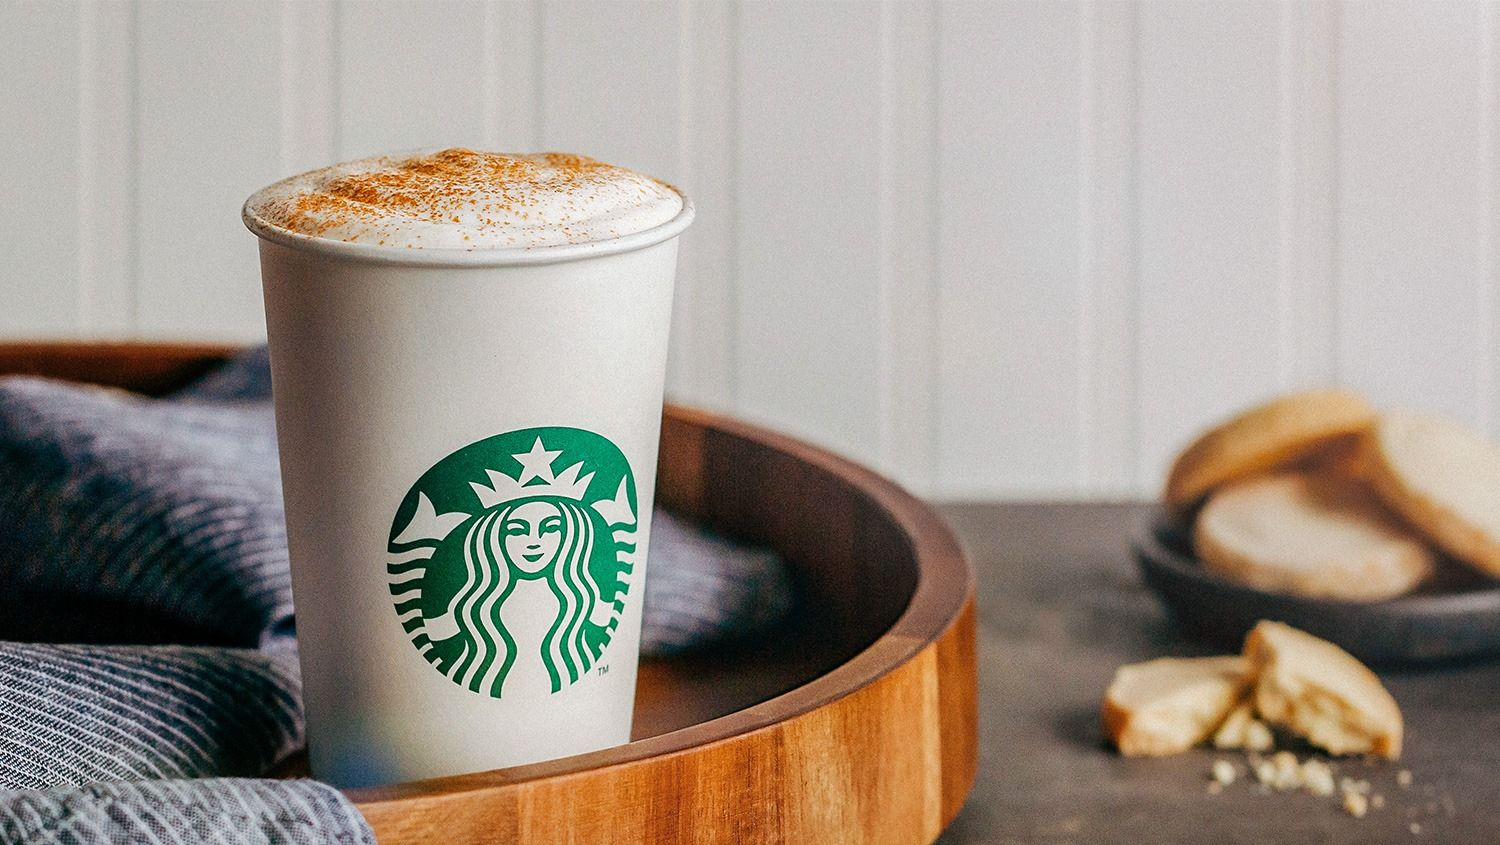 Starbucks Is Opening Its First Location In This Utah City And The Mormon Church Is Not Happy